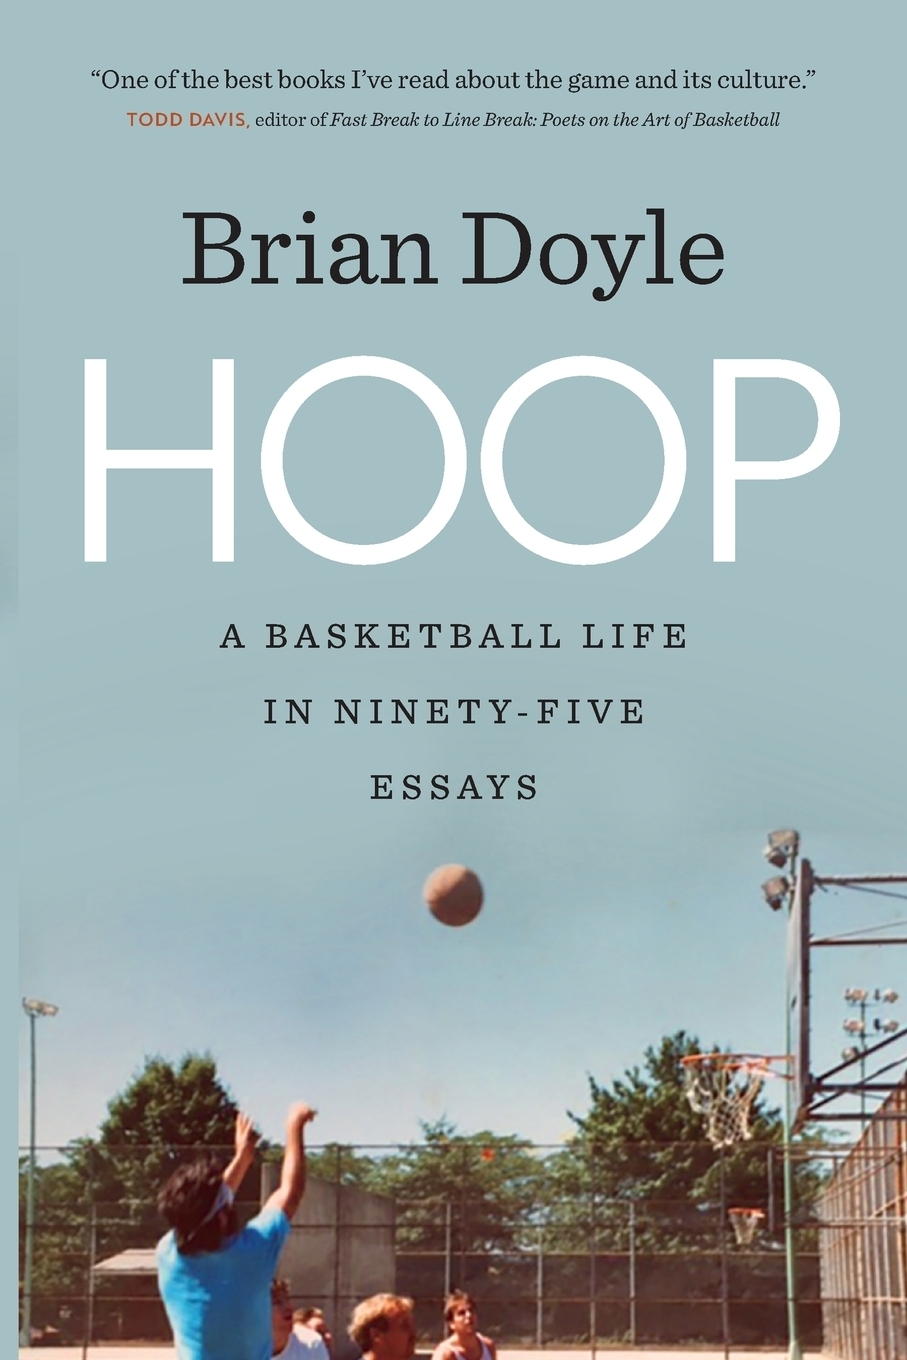 Hoop. A Basketball Life in Ninety-Five Essays